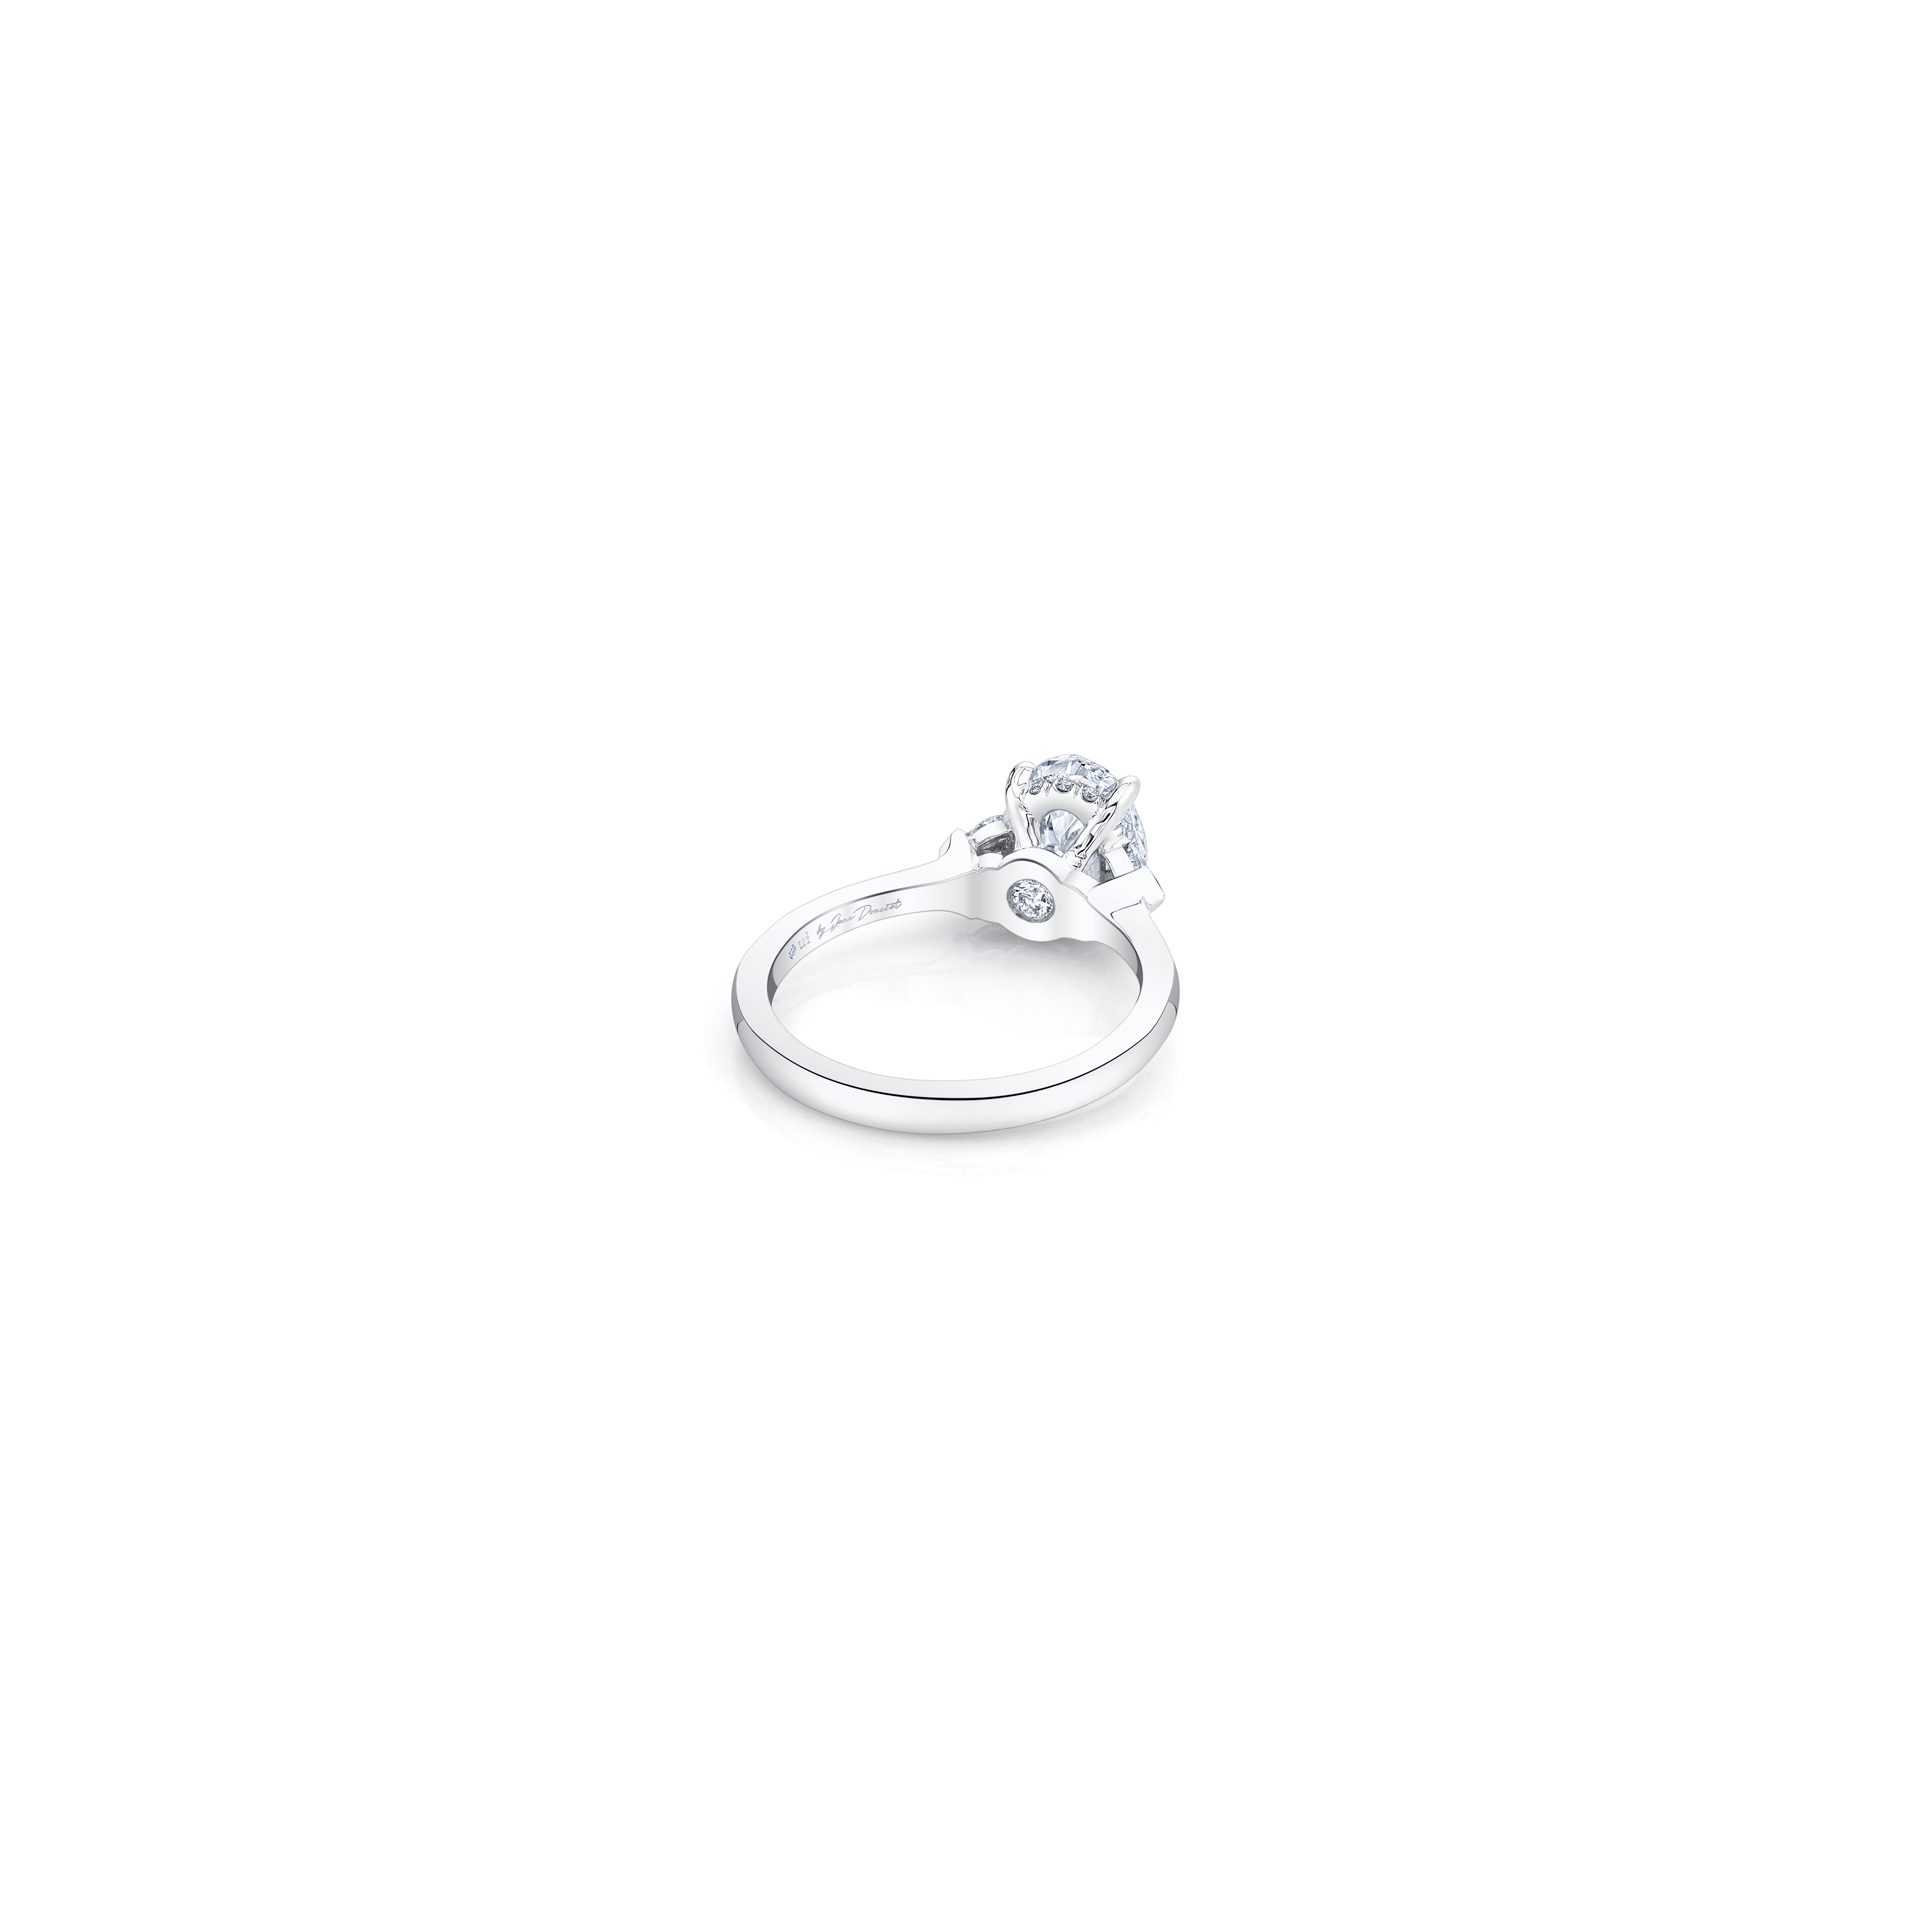 Claire Oval Three Stone Engagement Ring with heart-shaped diamond side stones in 18k White Gold Back View by Oui by Jean Dousset